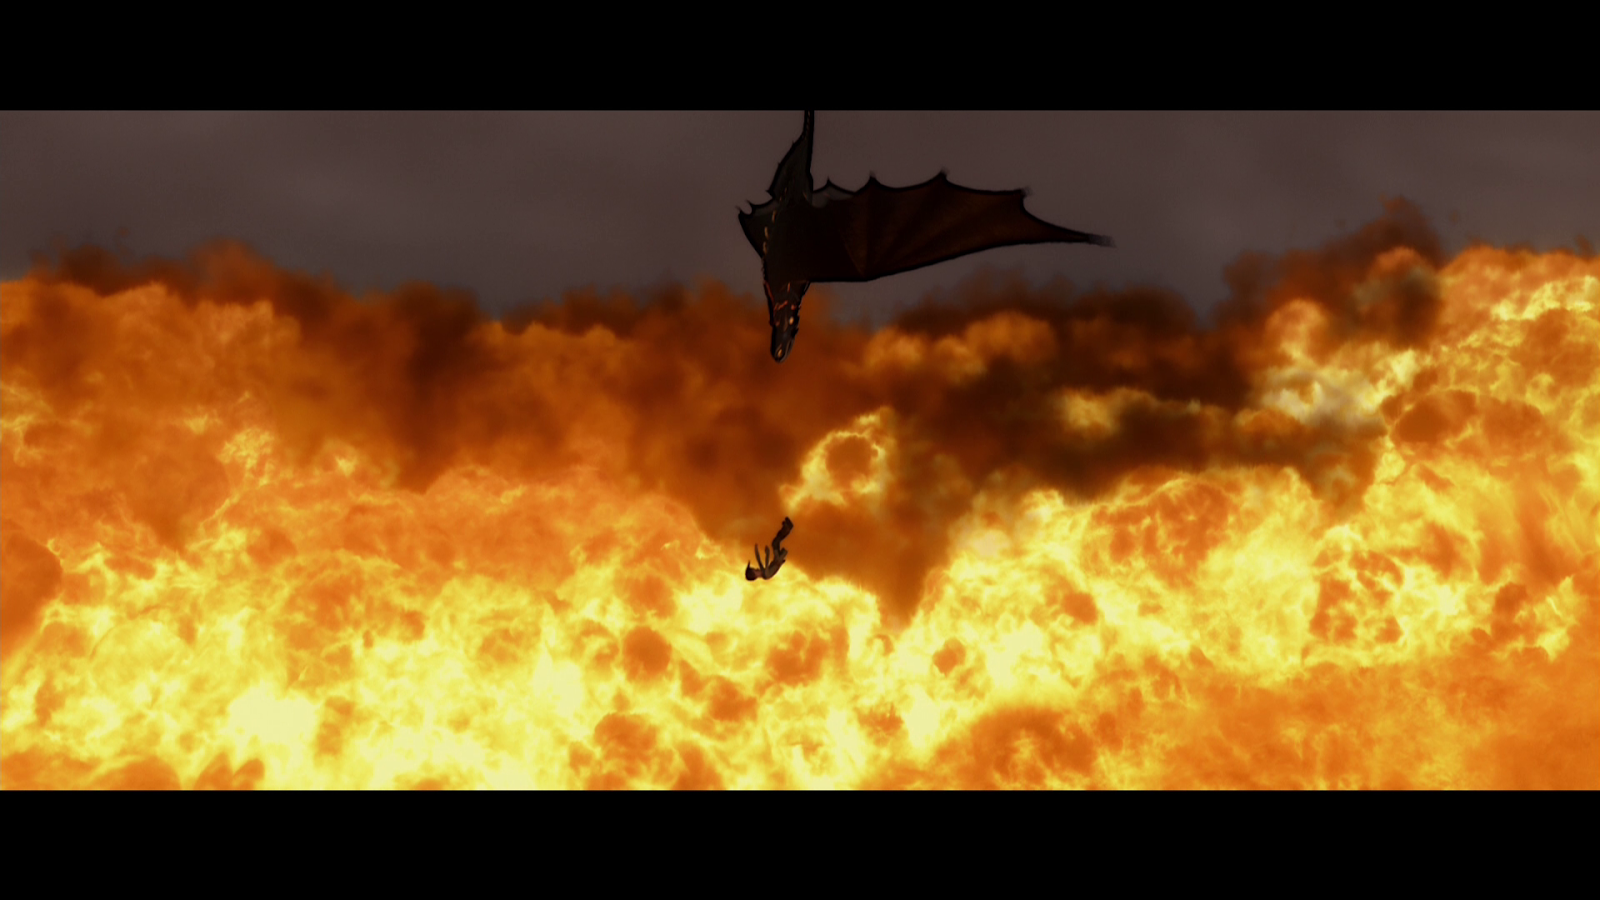 How to train your dragon failed critics how to train your dragon ccuart Image collections